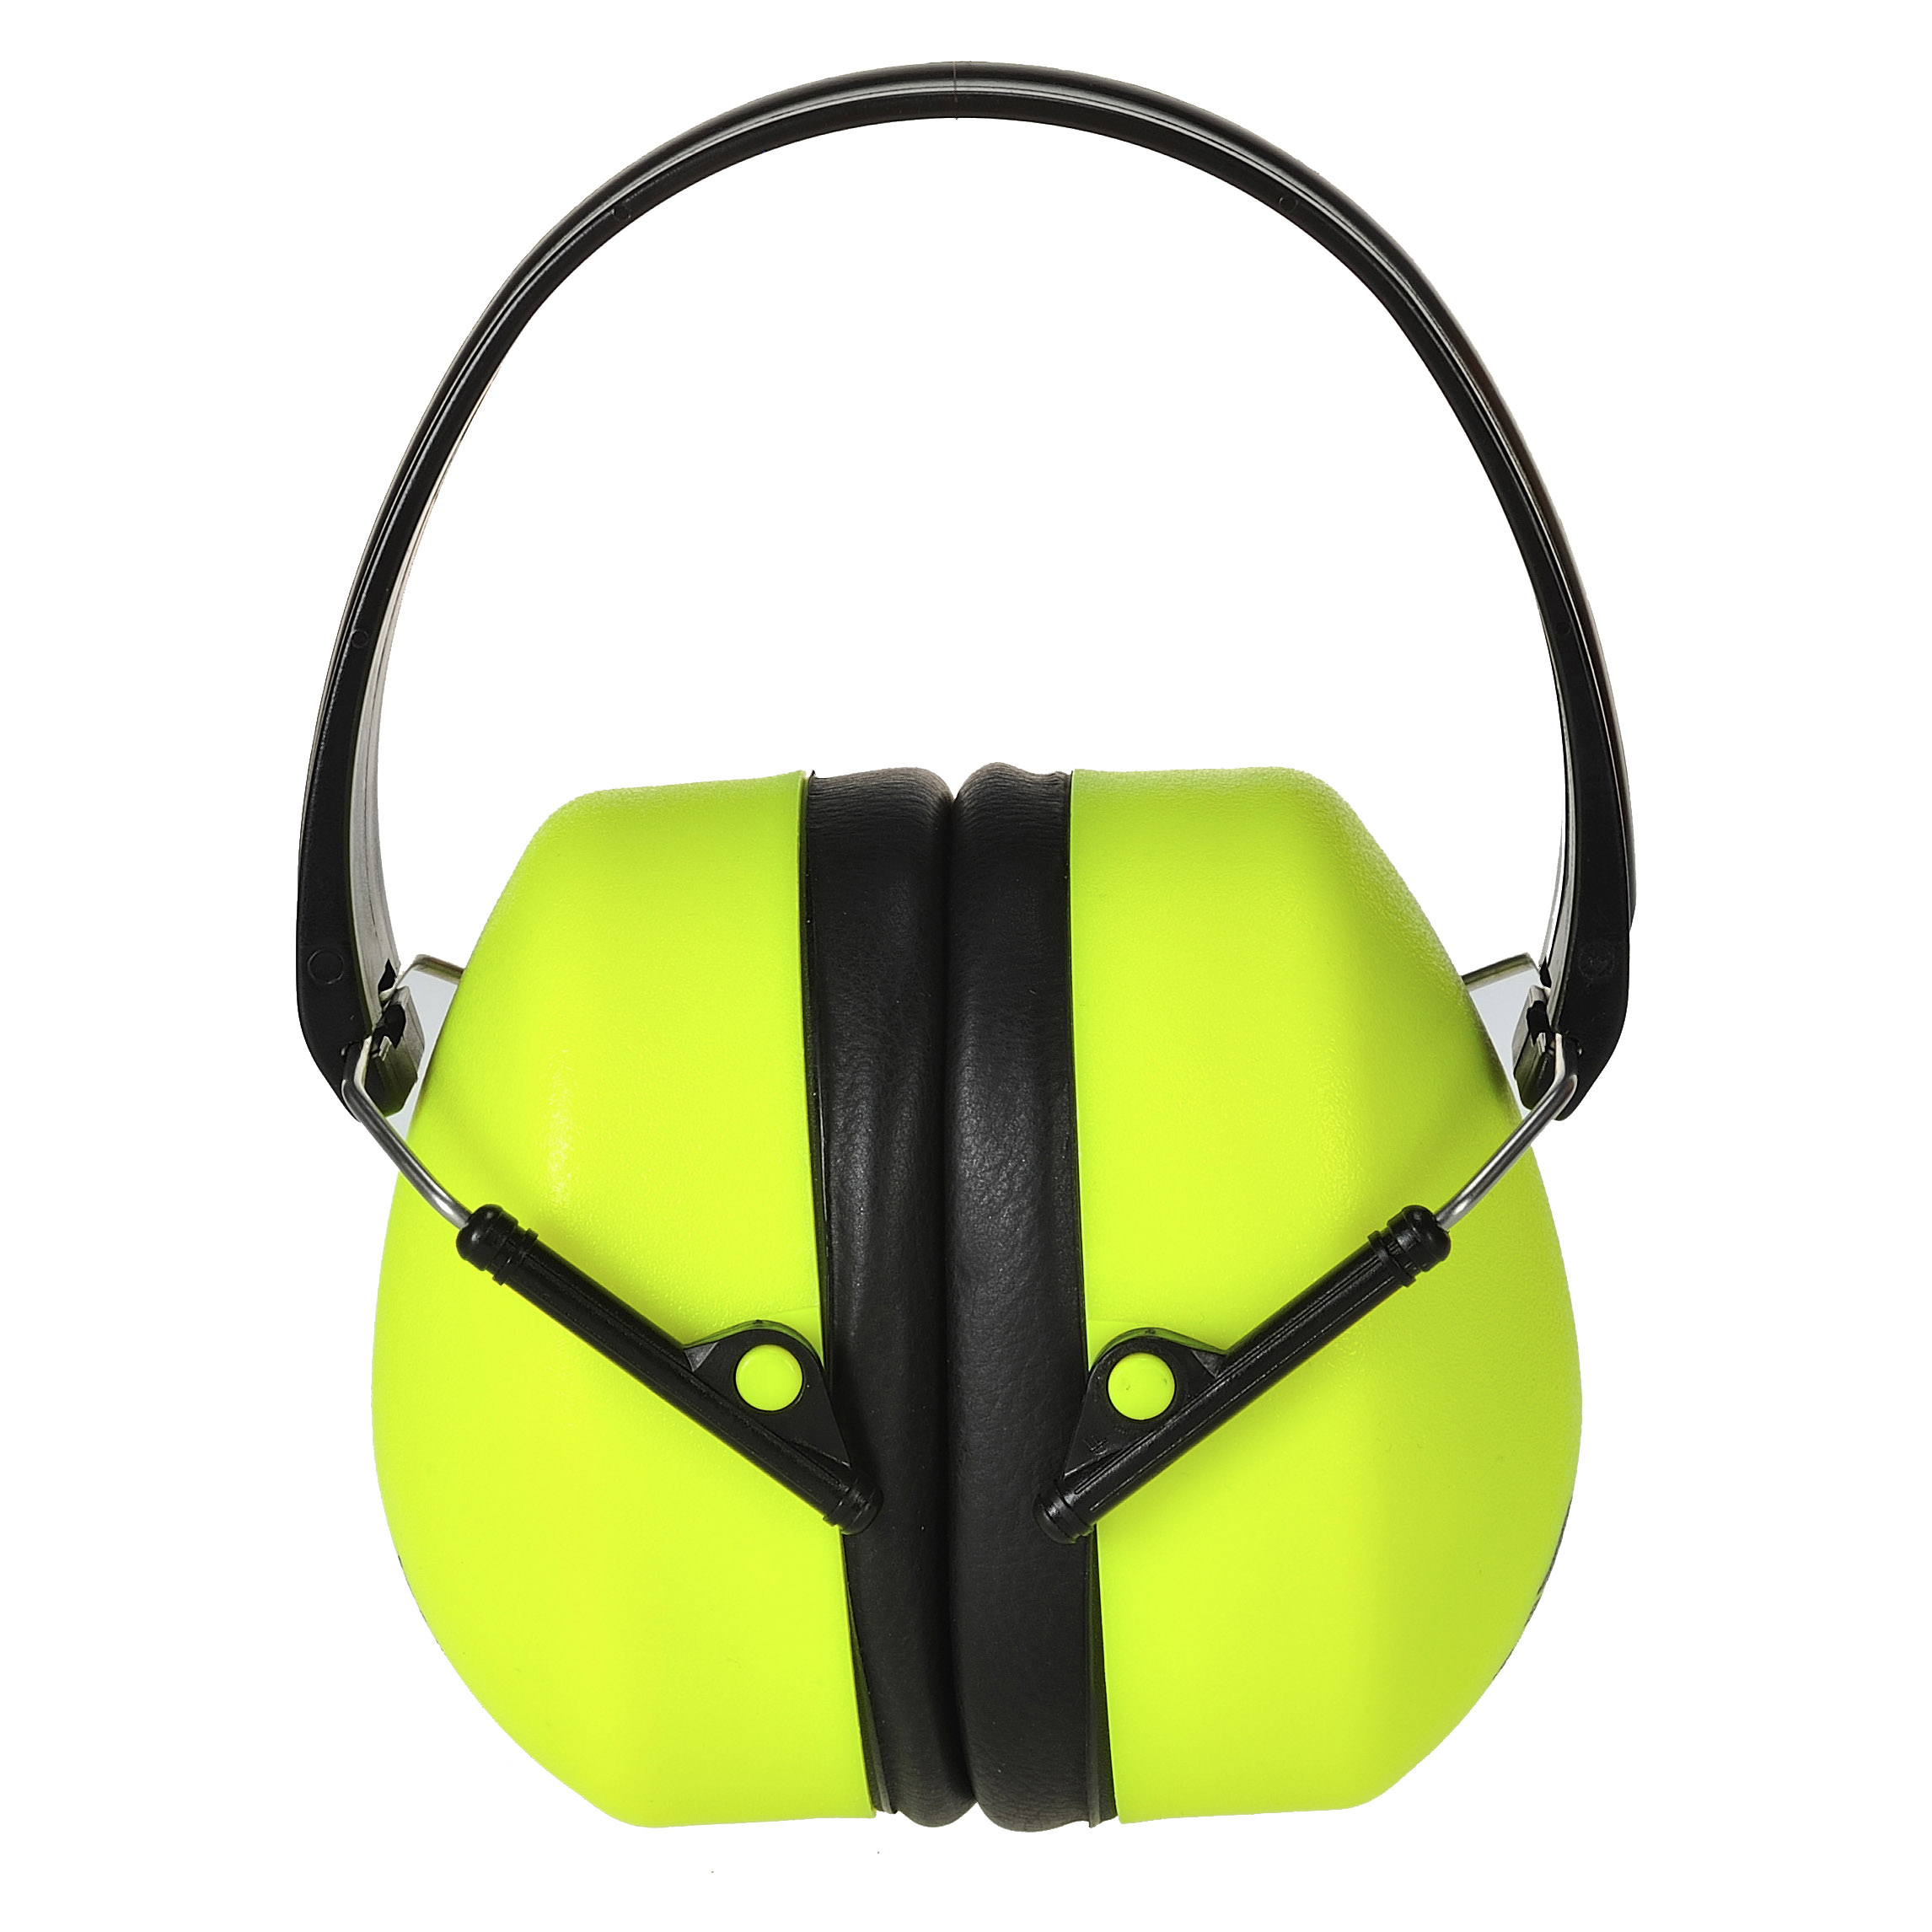 69f8ecb25da Super High Visibility Earmuffs - Portwest PS41 — iWantWorkwear